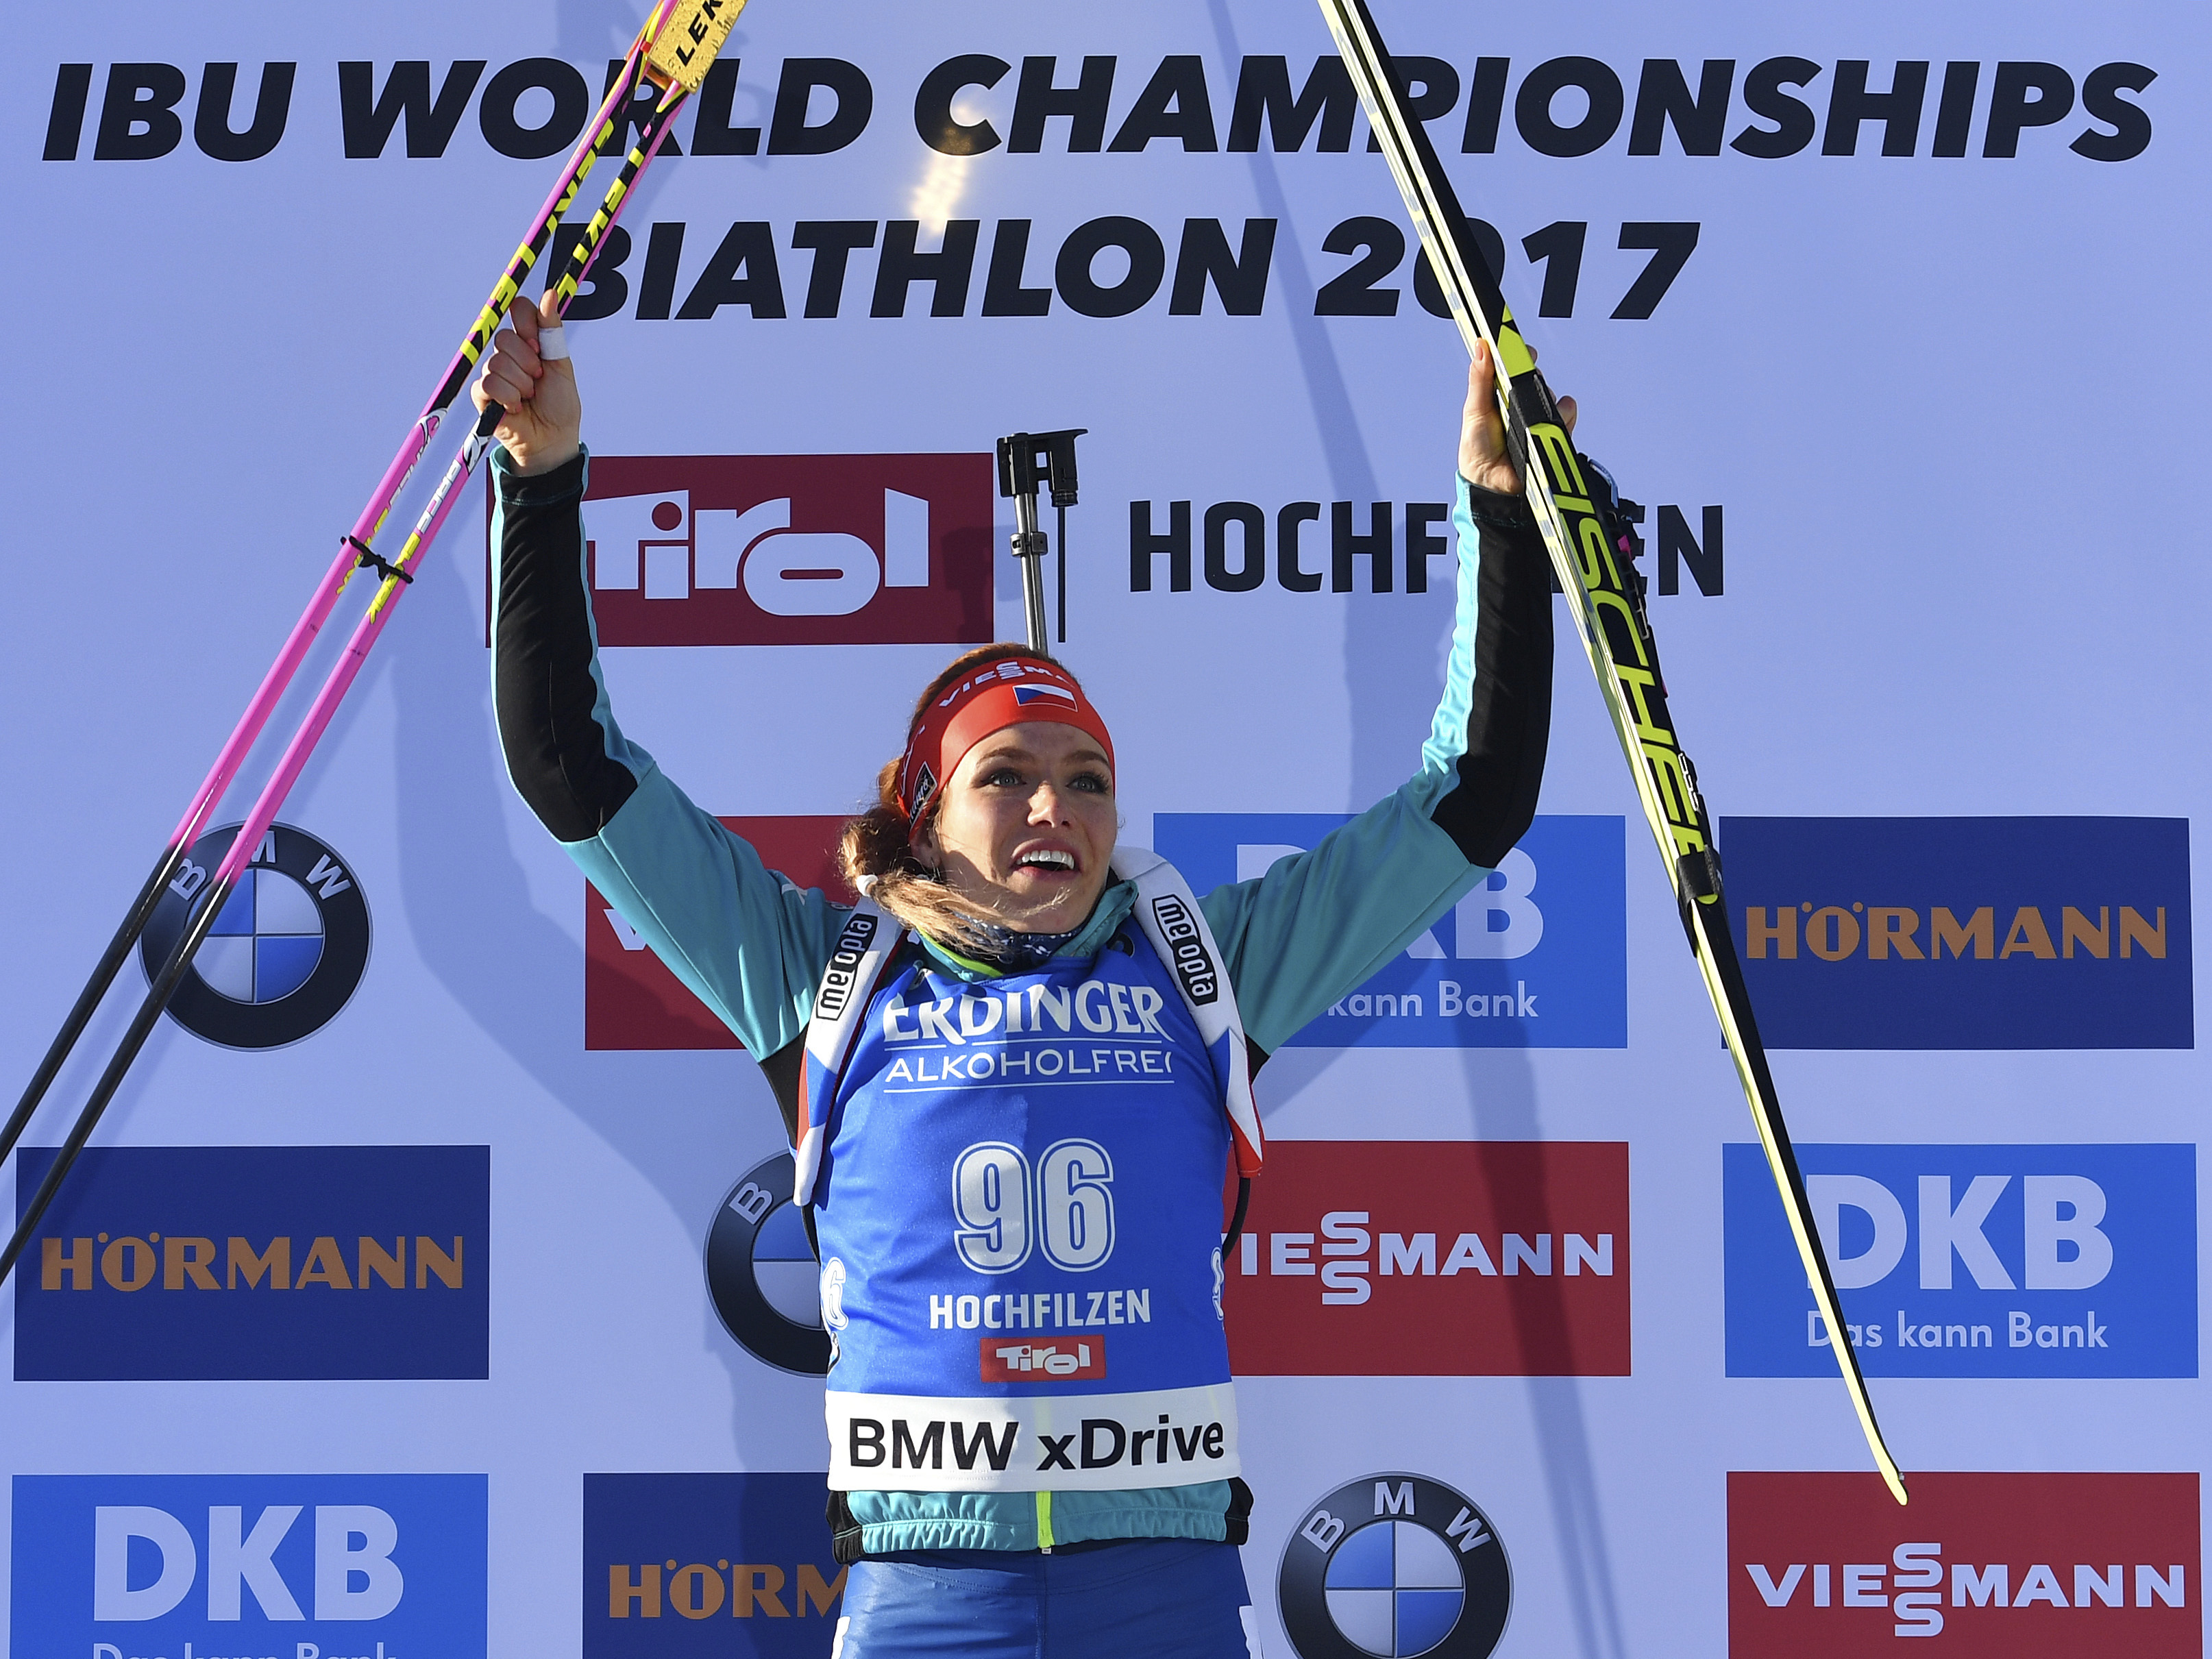 Czech Republic's winner Gabriela Koukalova celebrates on the podium after the women's 7.5 km sprint competition at the Biathlon World Championships in Hochfilzen,  Austria, Friday, Feb. 10, 2017. (AP Photo/Kerstin Joensson)